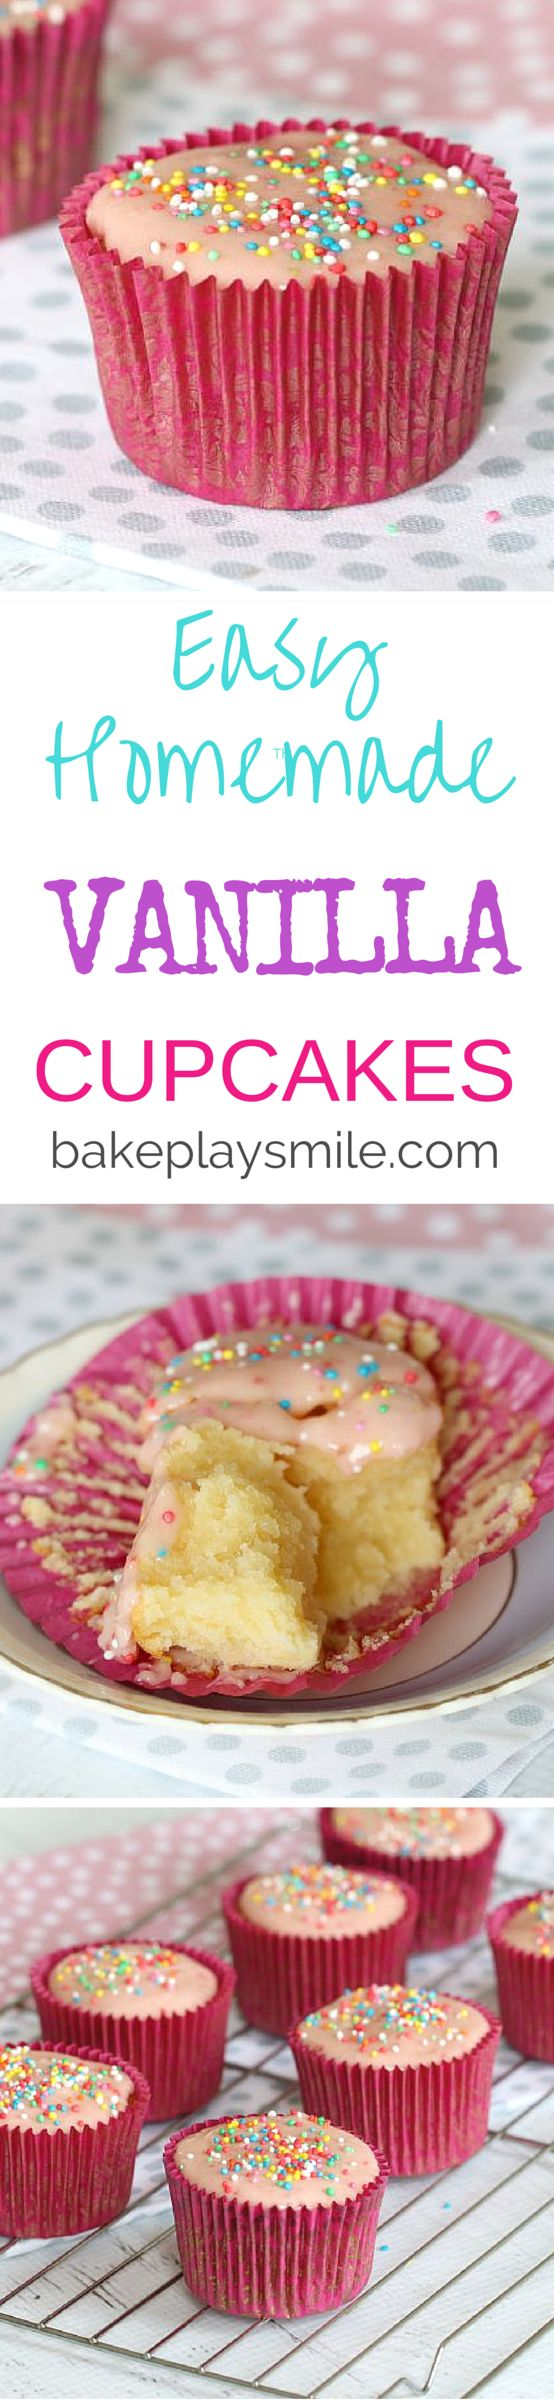 Light and fluffy Vanilla Cupcakes have never been so easy! This is my go-to recipe for parties, birthdays and afternoon teas. It's based on a really old family recipe! #vanilla #cupcakes #easy #light #fluffy #party #food #recipe #conventional #thermomix